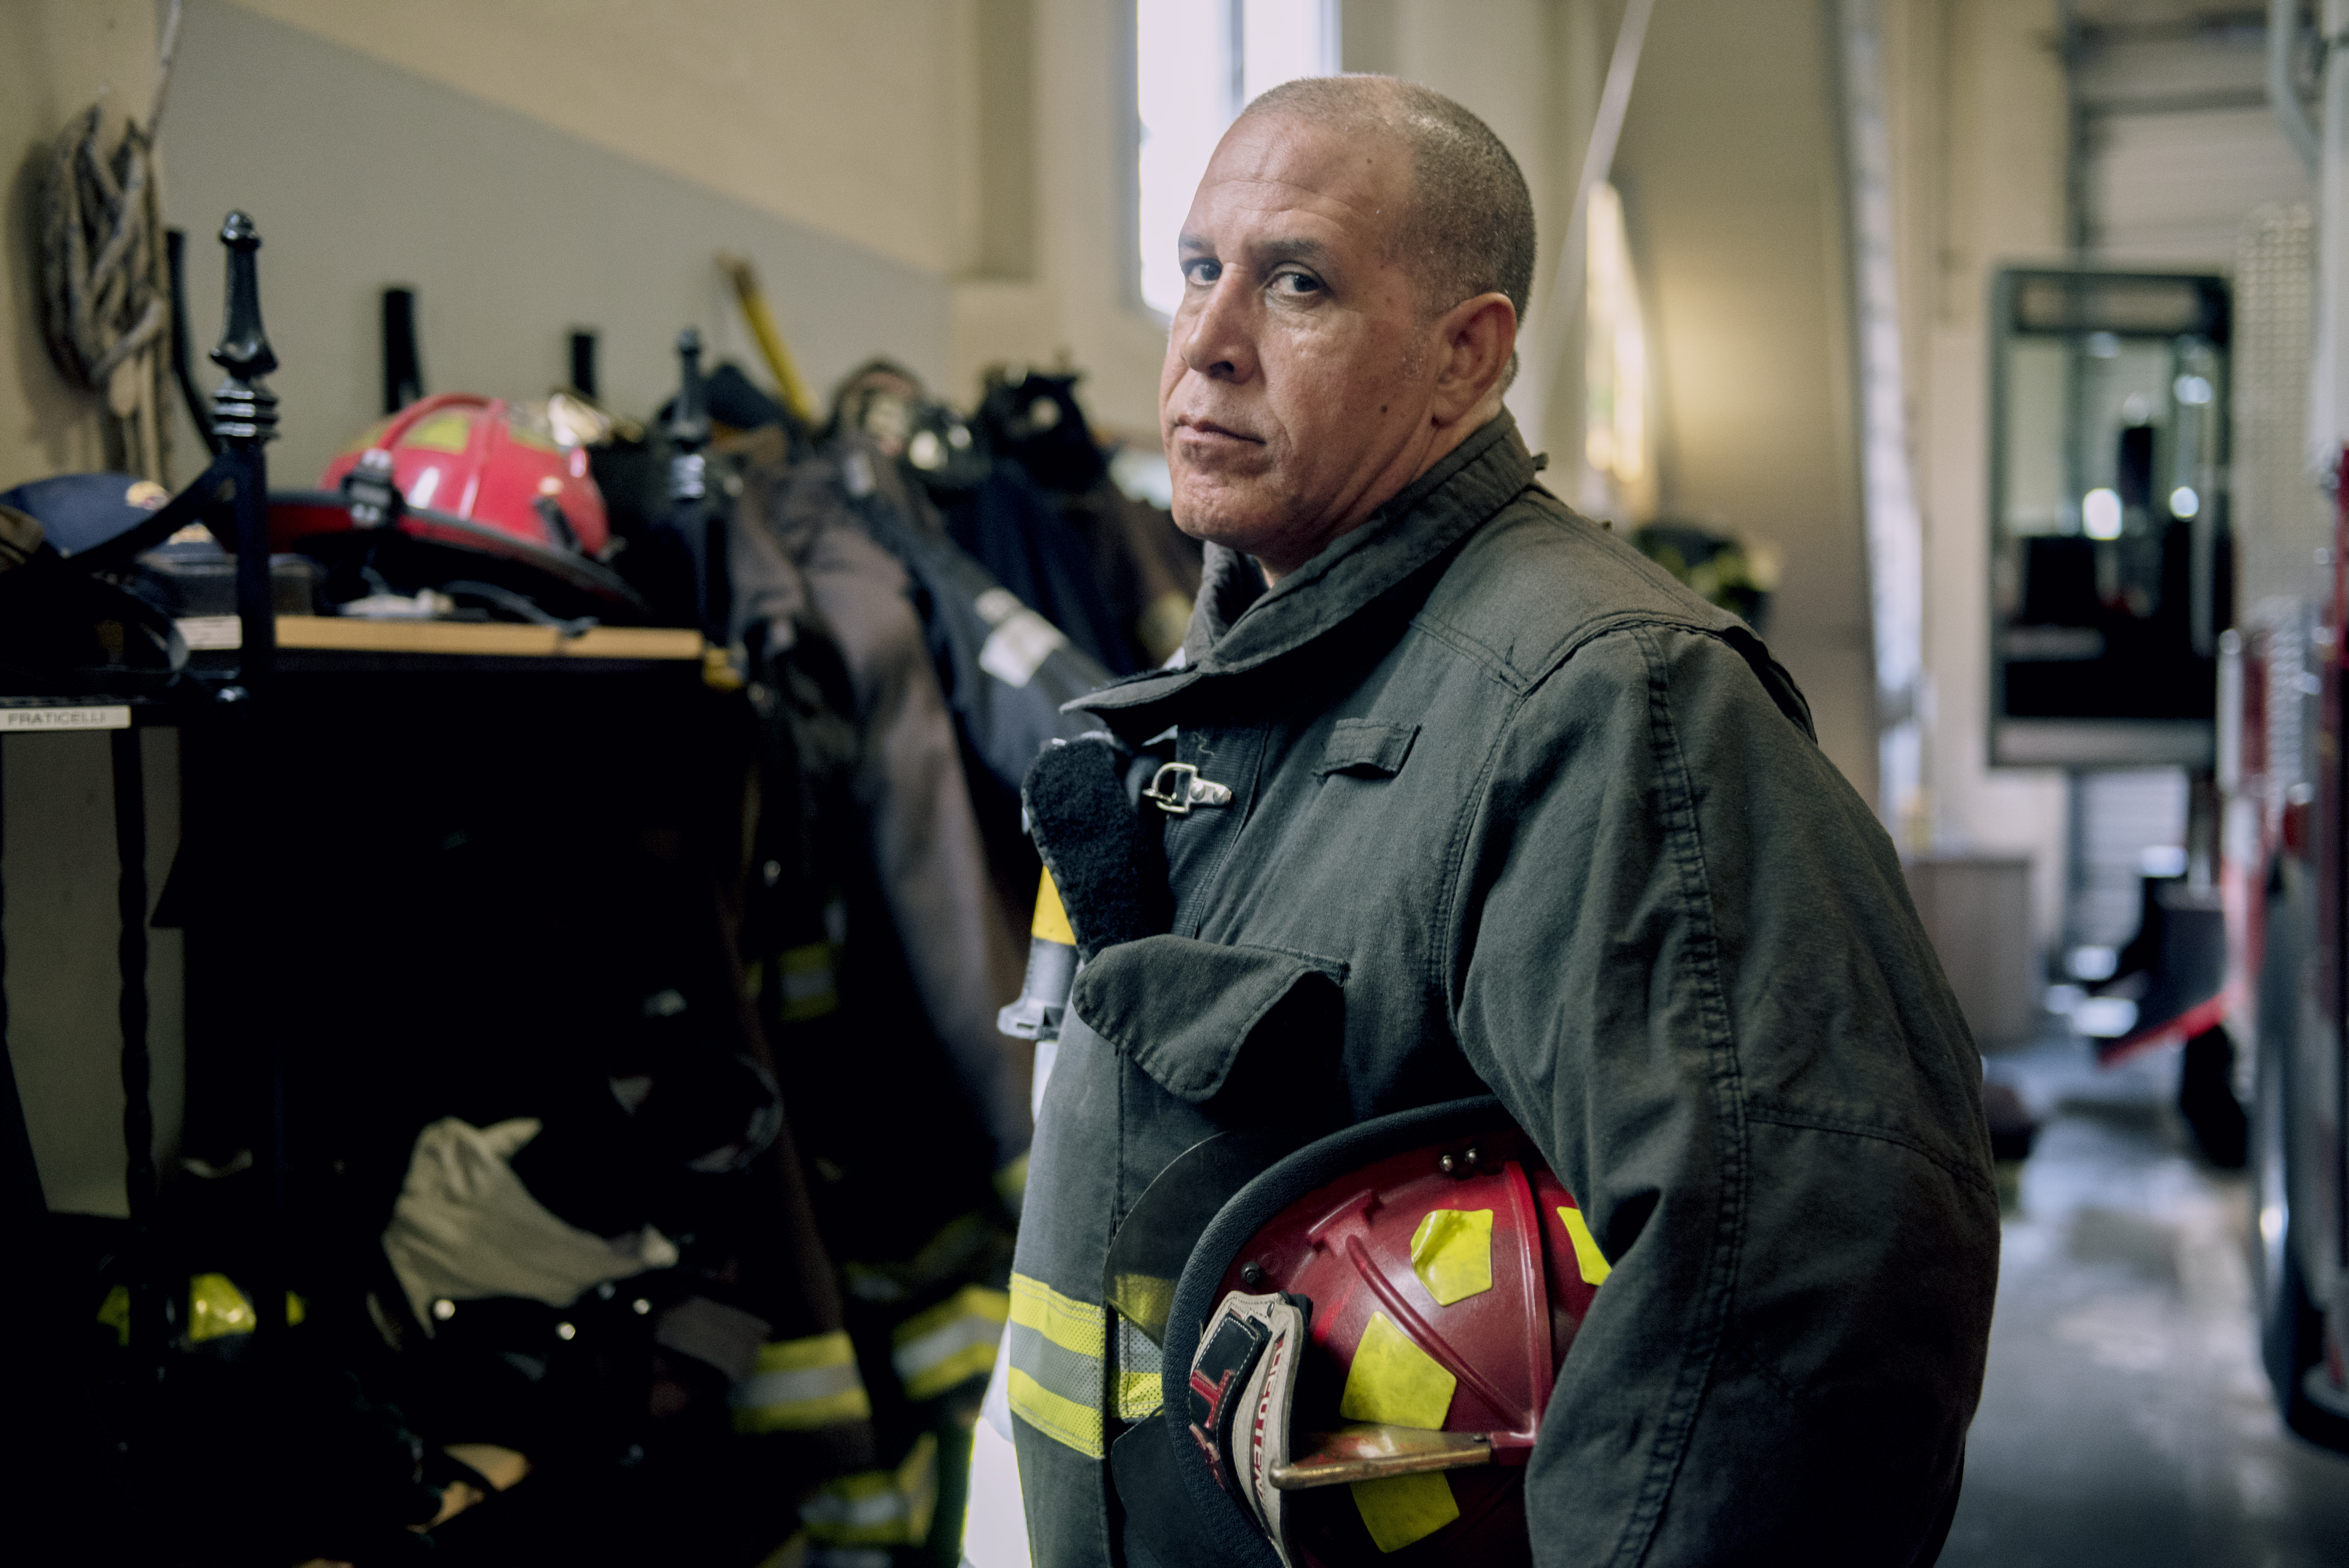 After a horrific blaze, Oakland firefighters confront lasting